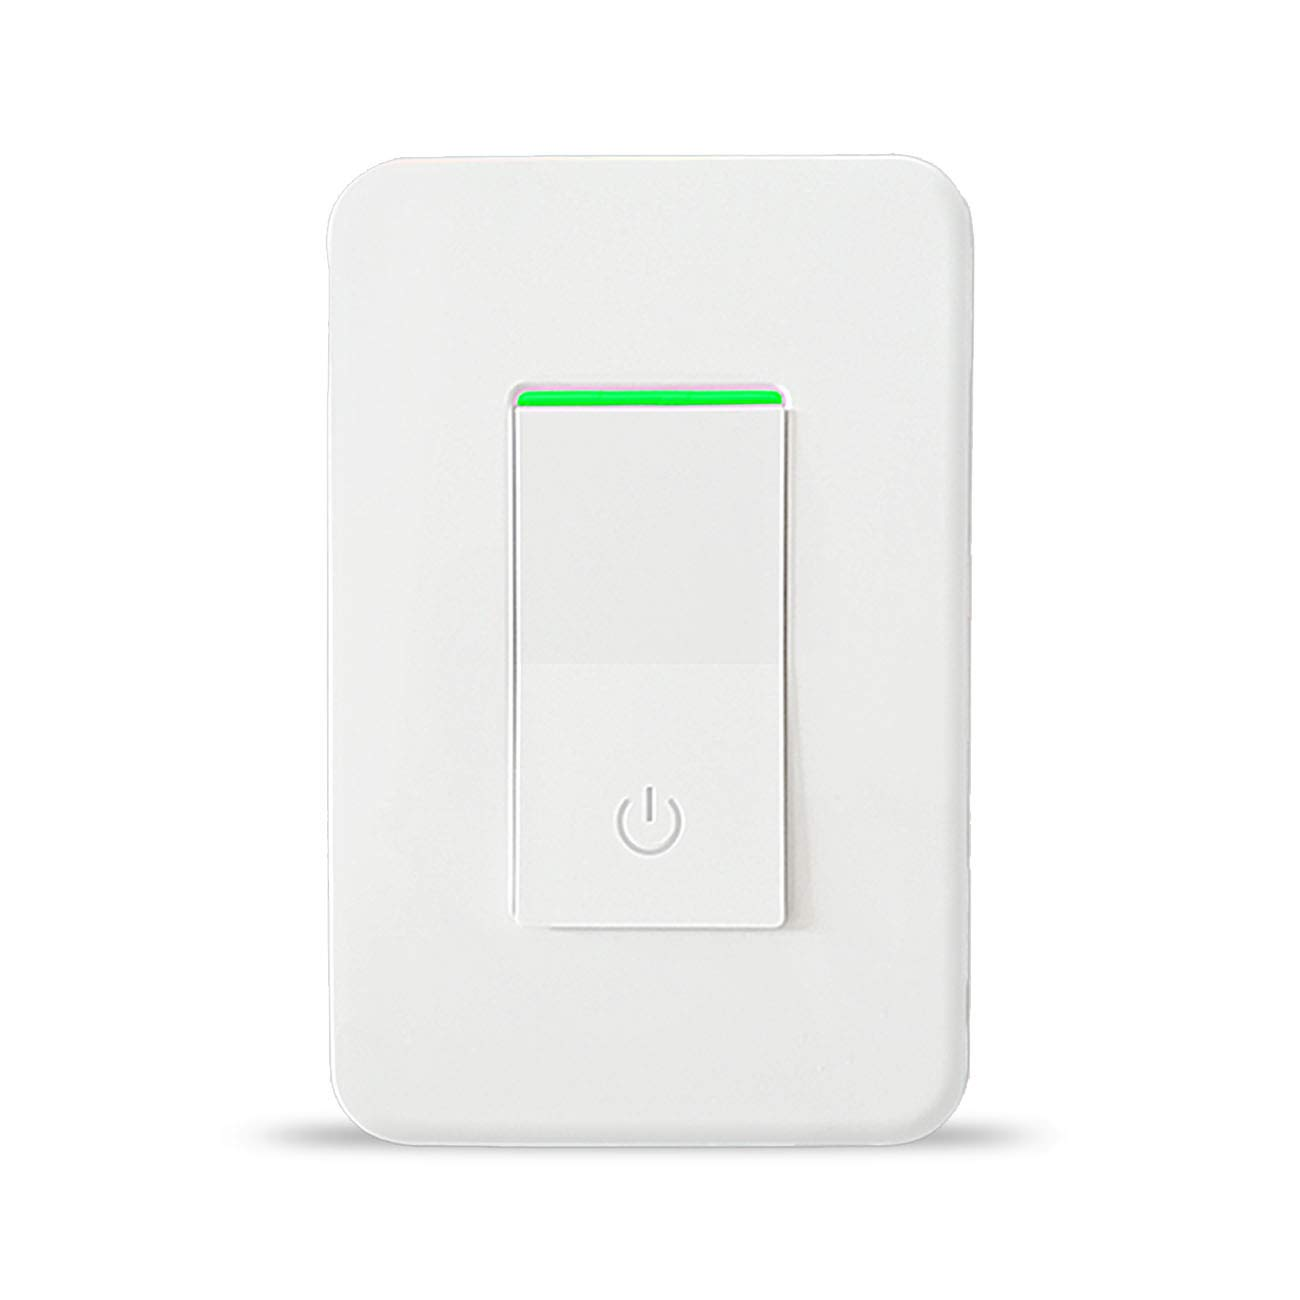 Smart Wi-Fi Light Switch, Wireless Wifi Wall Switch Remote Control, Works with Alexa, Google Home, IFTTT, No Hub Required, Single-Pole Only, Netural Wire Required, Overload Protection 15A, ETL Listed